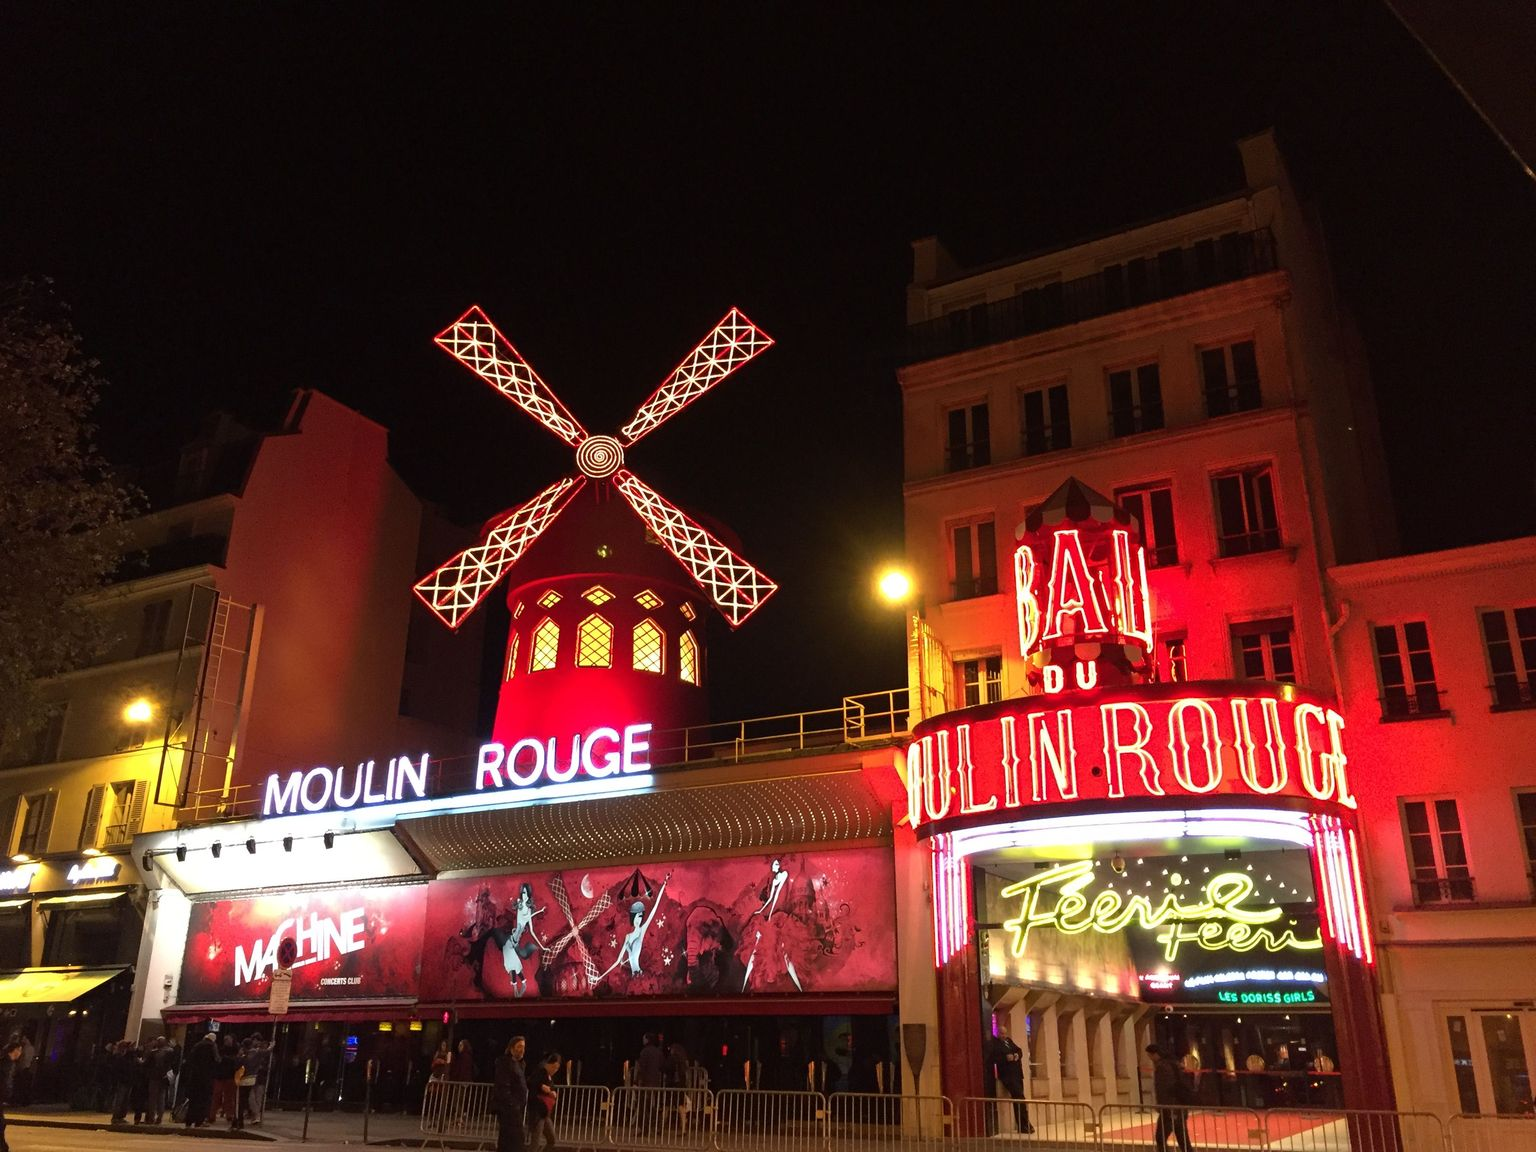 MAIS FOTOS, Moulin Rouge Show Ticket VIP Seating with Champagne